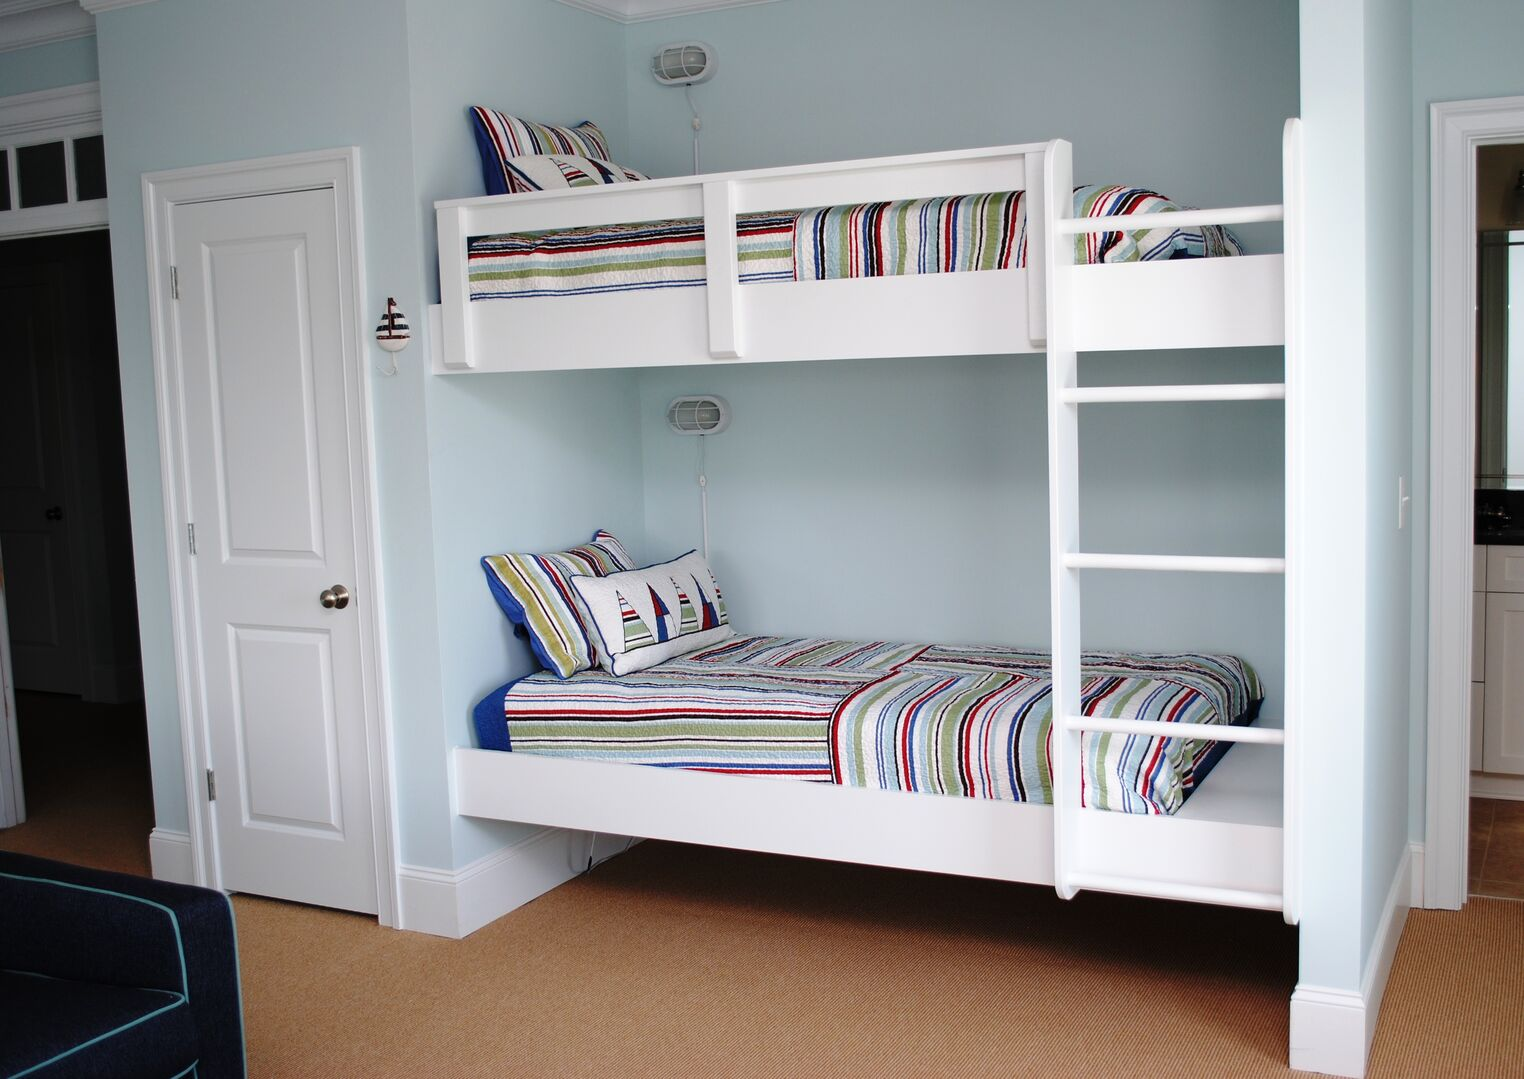 Living Area with Bunk Bed - Second Floor